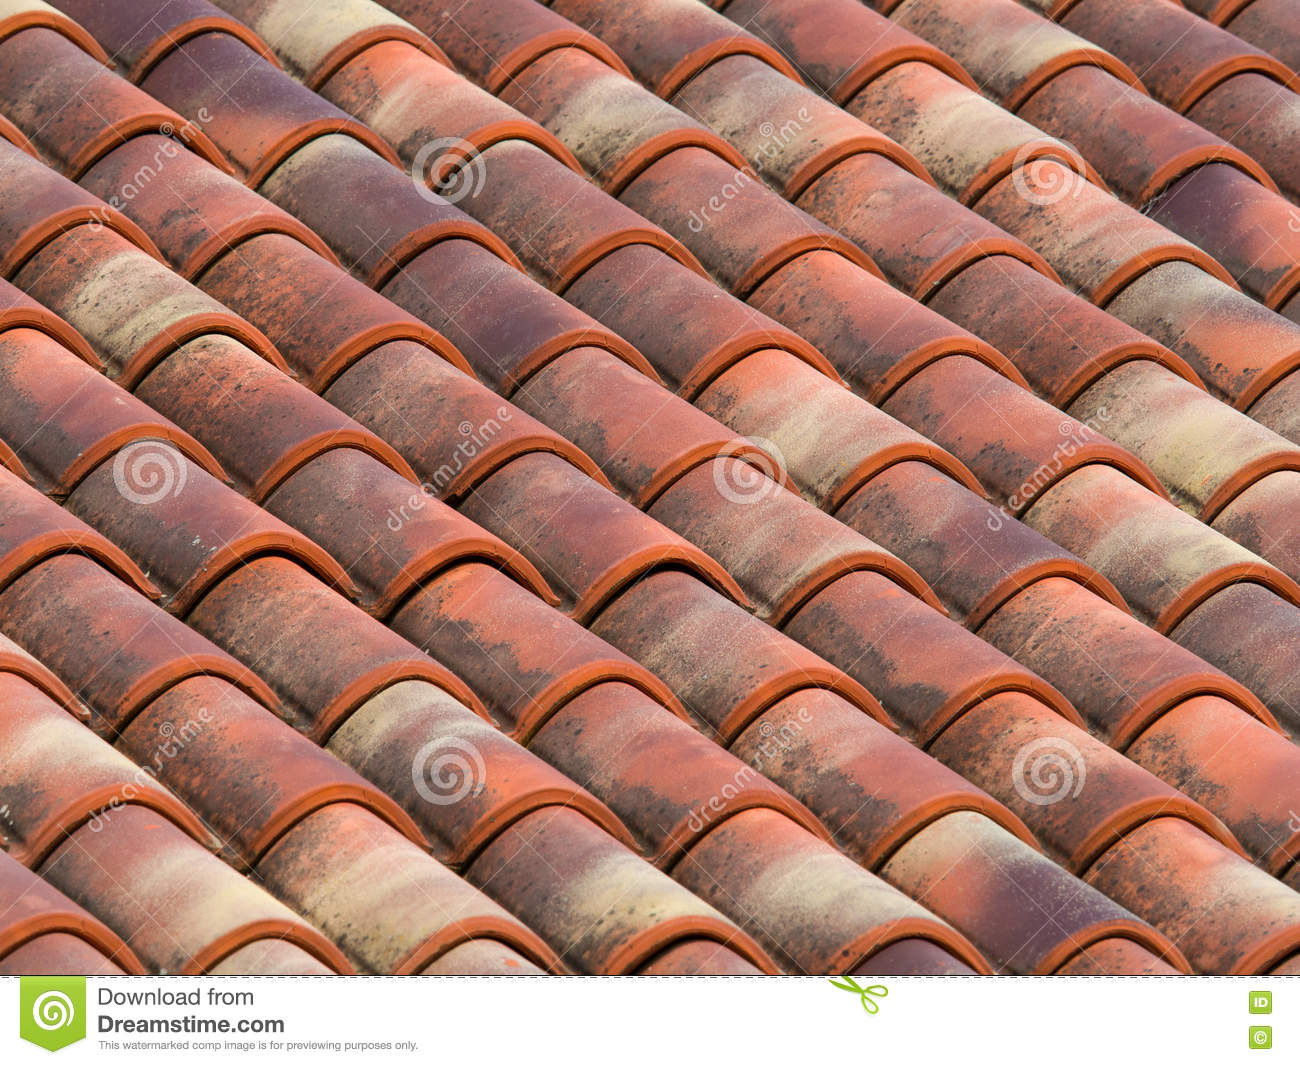 Clay Tiles On An Italian Roof Stock Image